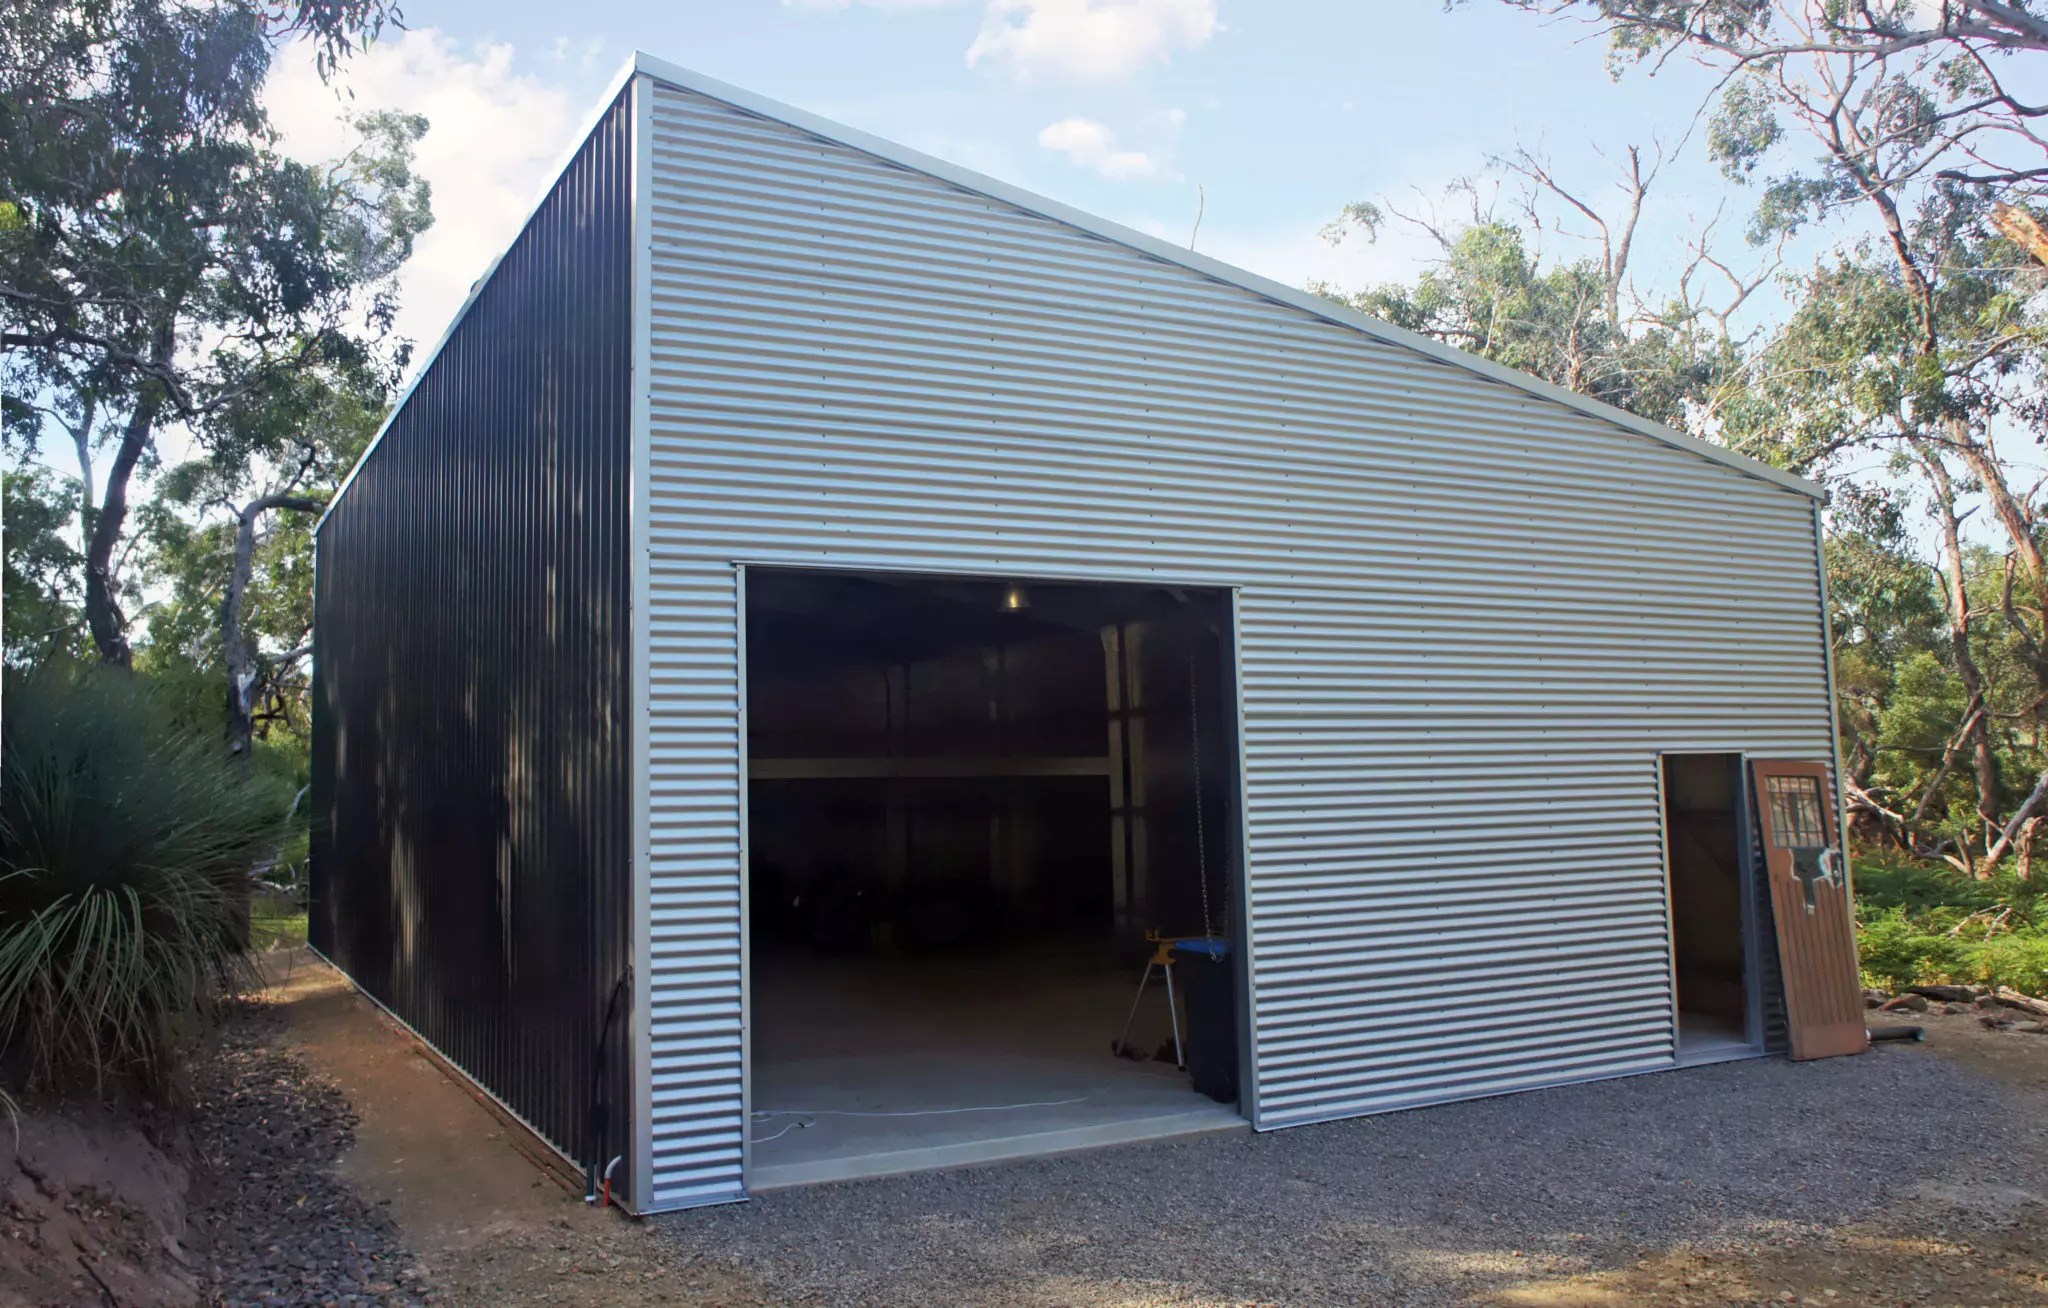 THE TOP 8 REASONS YOU SHOULD GET A SHED